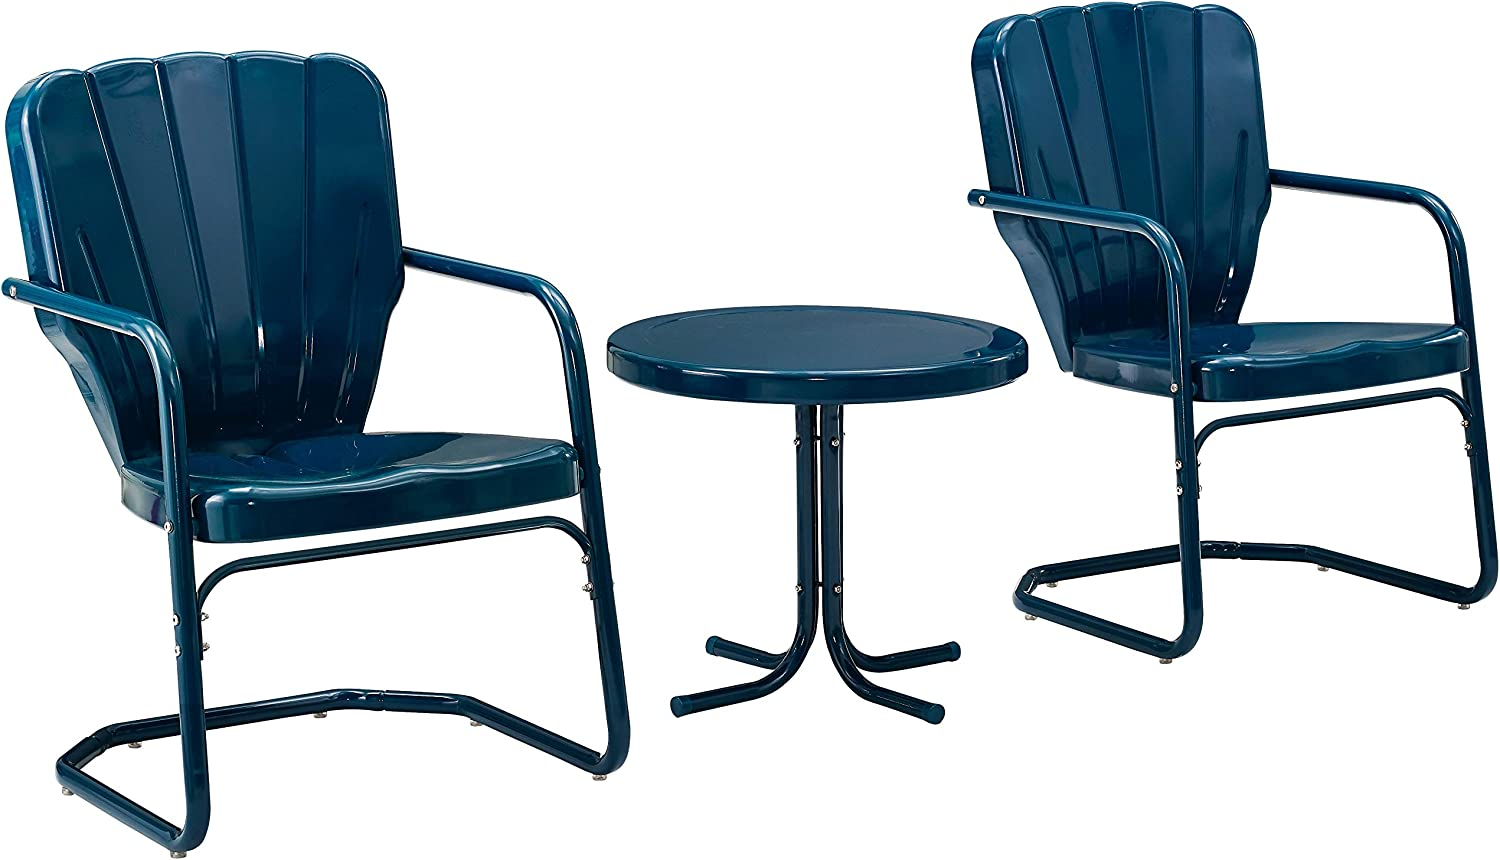 Crosley Furniture KO10012NV Ridgeland Retro Metal 3-Piece Seating Set with 2 Chairs and Side Table, Navy